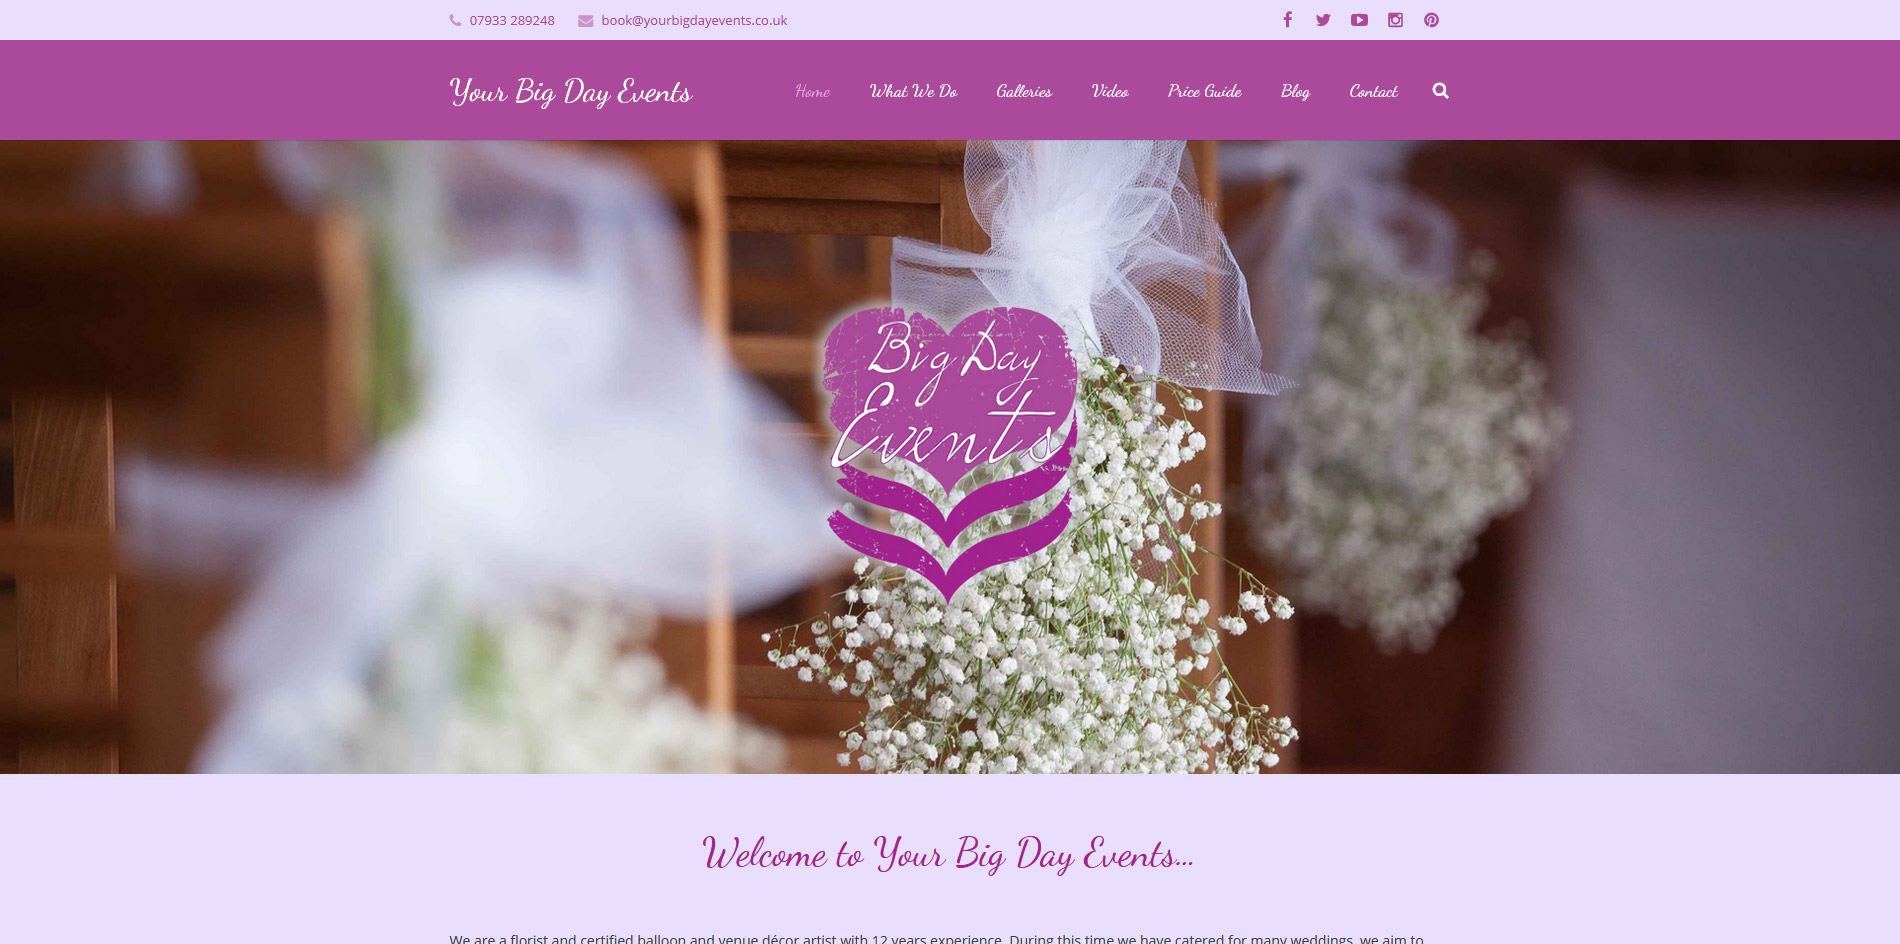 Your Big Day Events Website